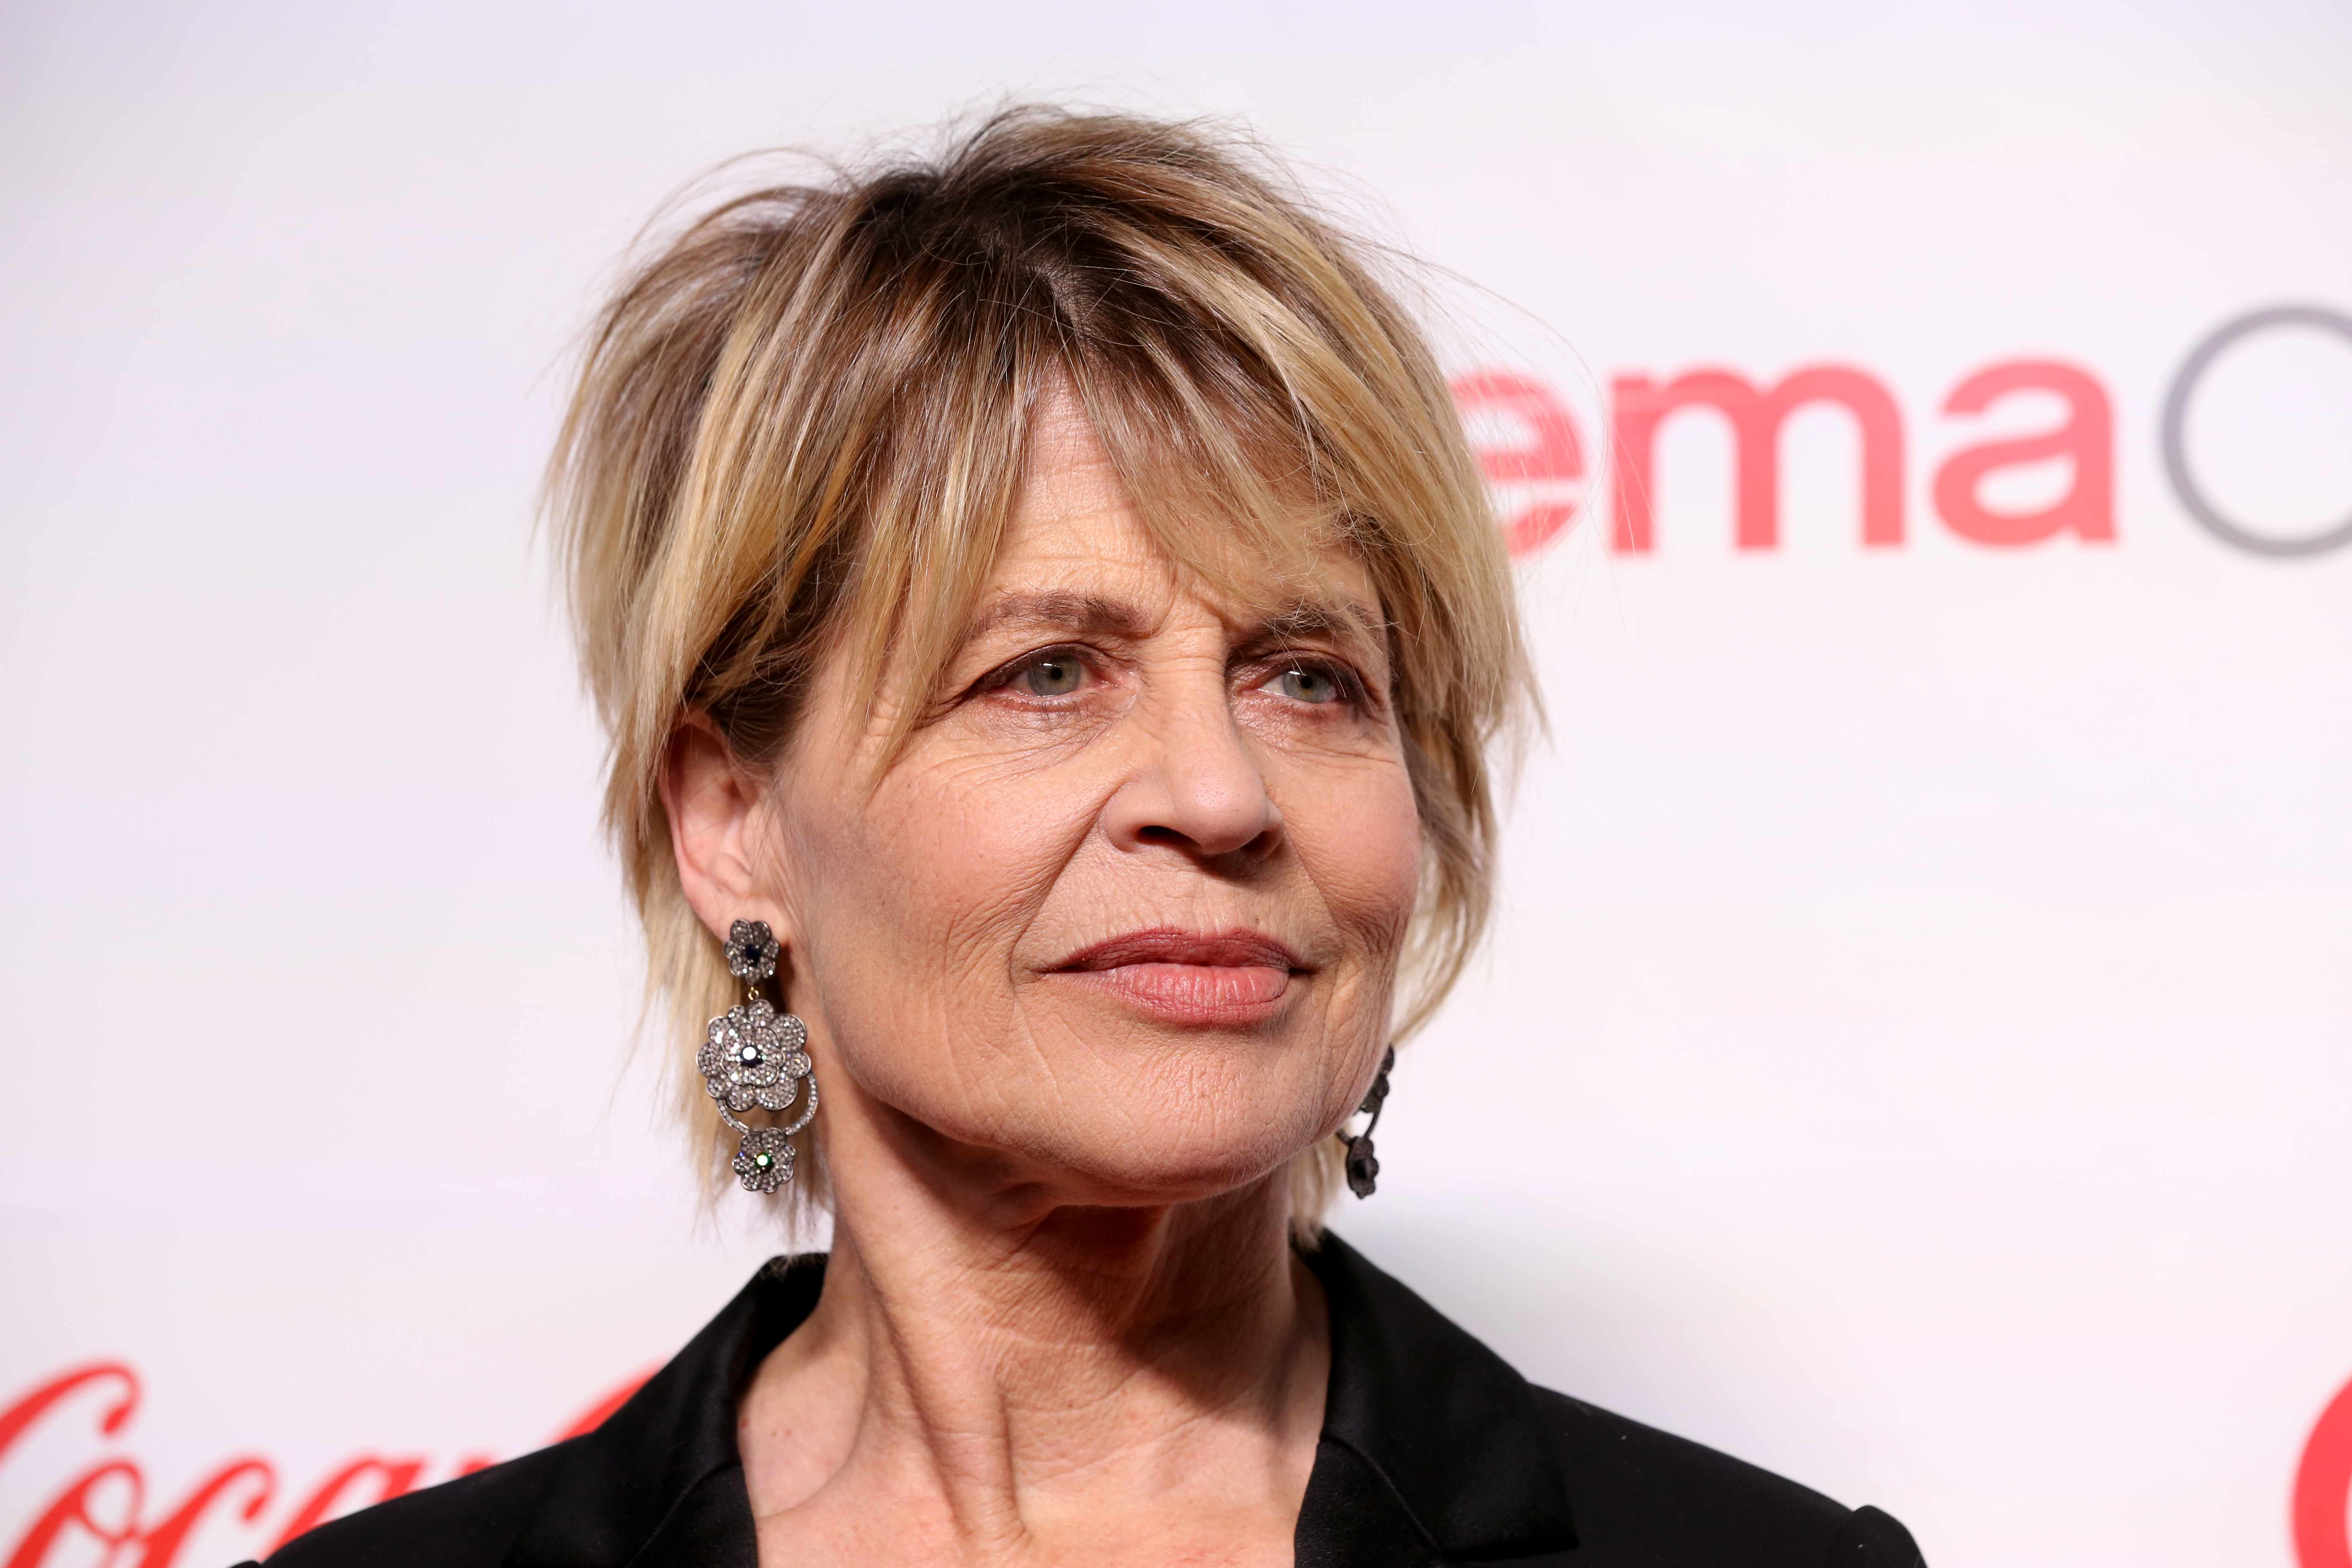 "LAS VEGAS, NEVADA - APRIL 04: Recipient of the ""CinemaCon Ensemble Award"" for the upcoming movie ""Terminator: Dark Fate"" actress Linda Hamilton attends the CinemaCon Big Screen Achievement Awards at Omnia Nightclub at Caesars Palace on April 04, 2019 in Las Vegas, Nevada. CinemaCon is the official convention of the National Association of Theatre Owners. (Photo by Gabe Ginsberg/WireImage)"